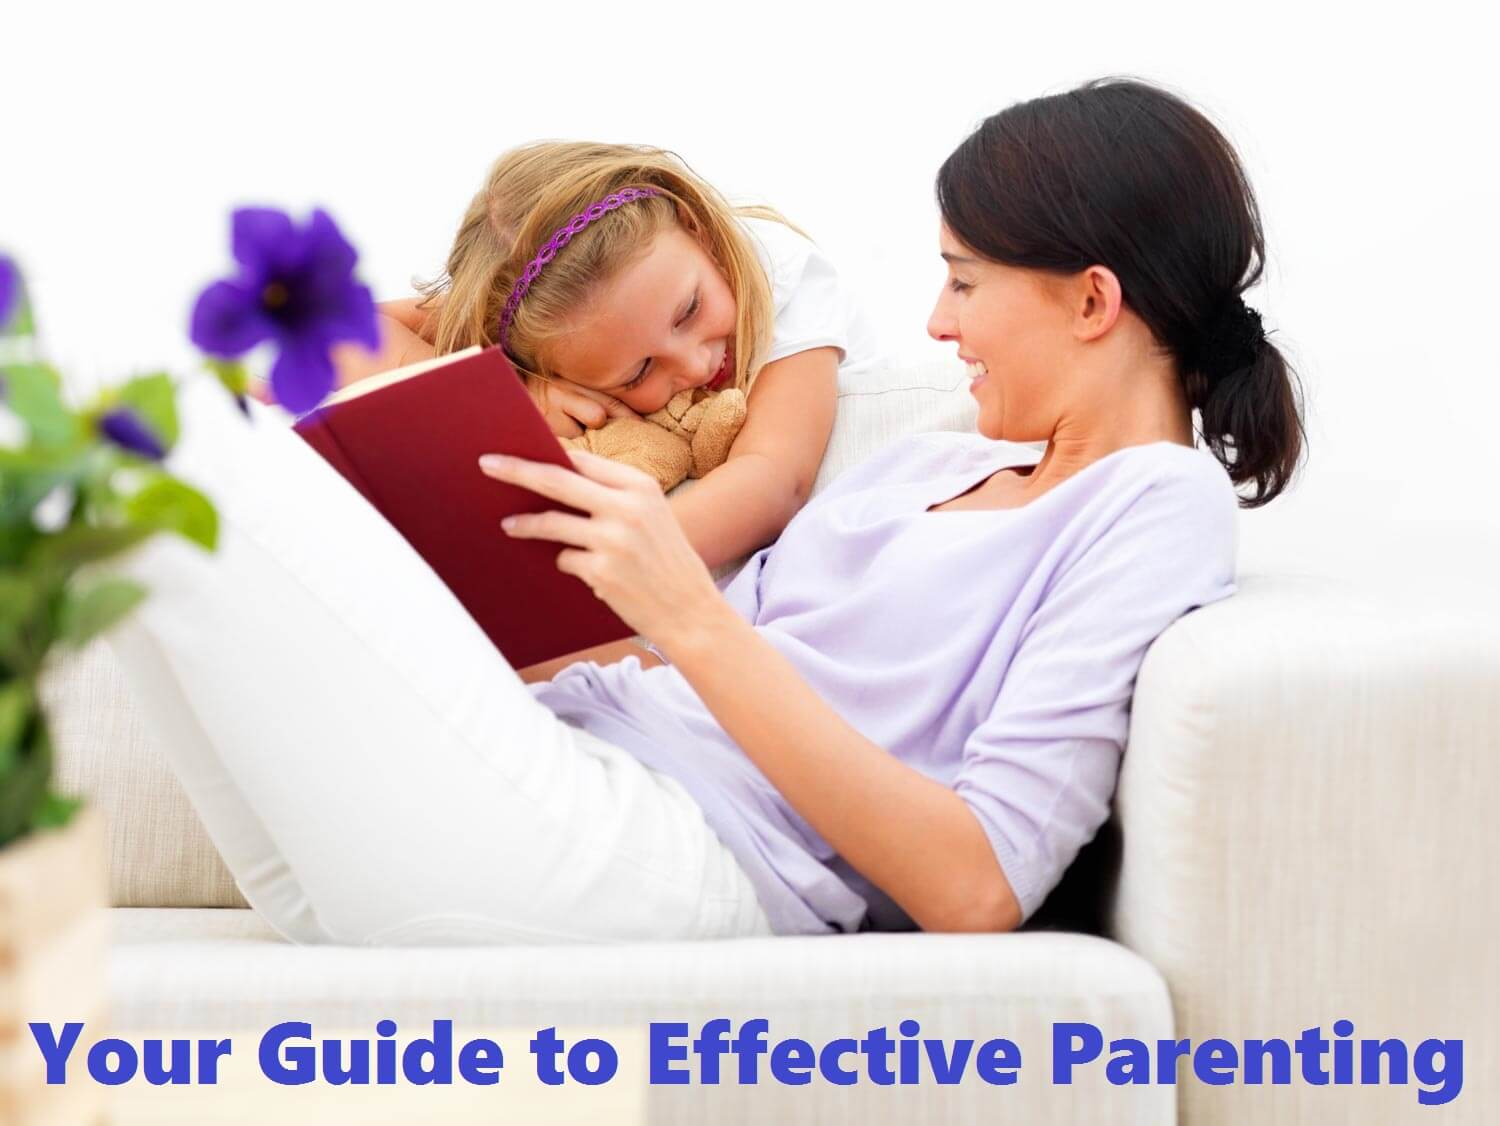 Your Guide to Effective Parenting